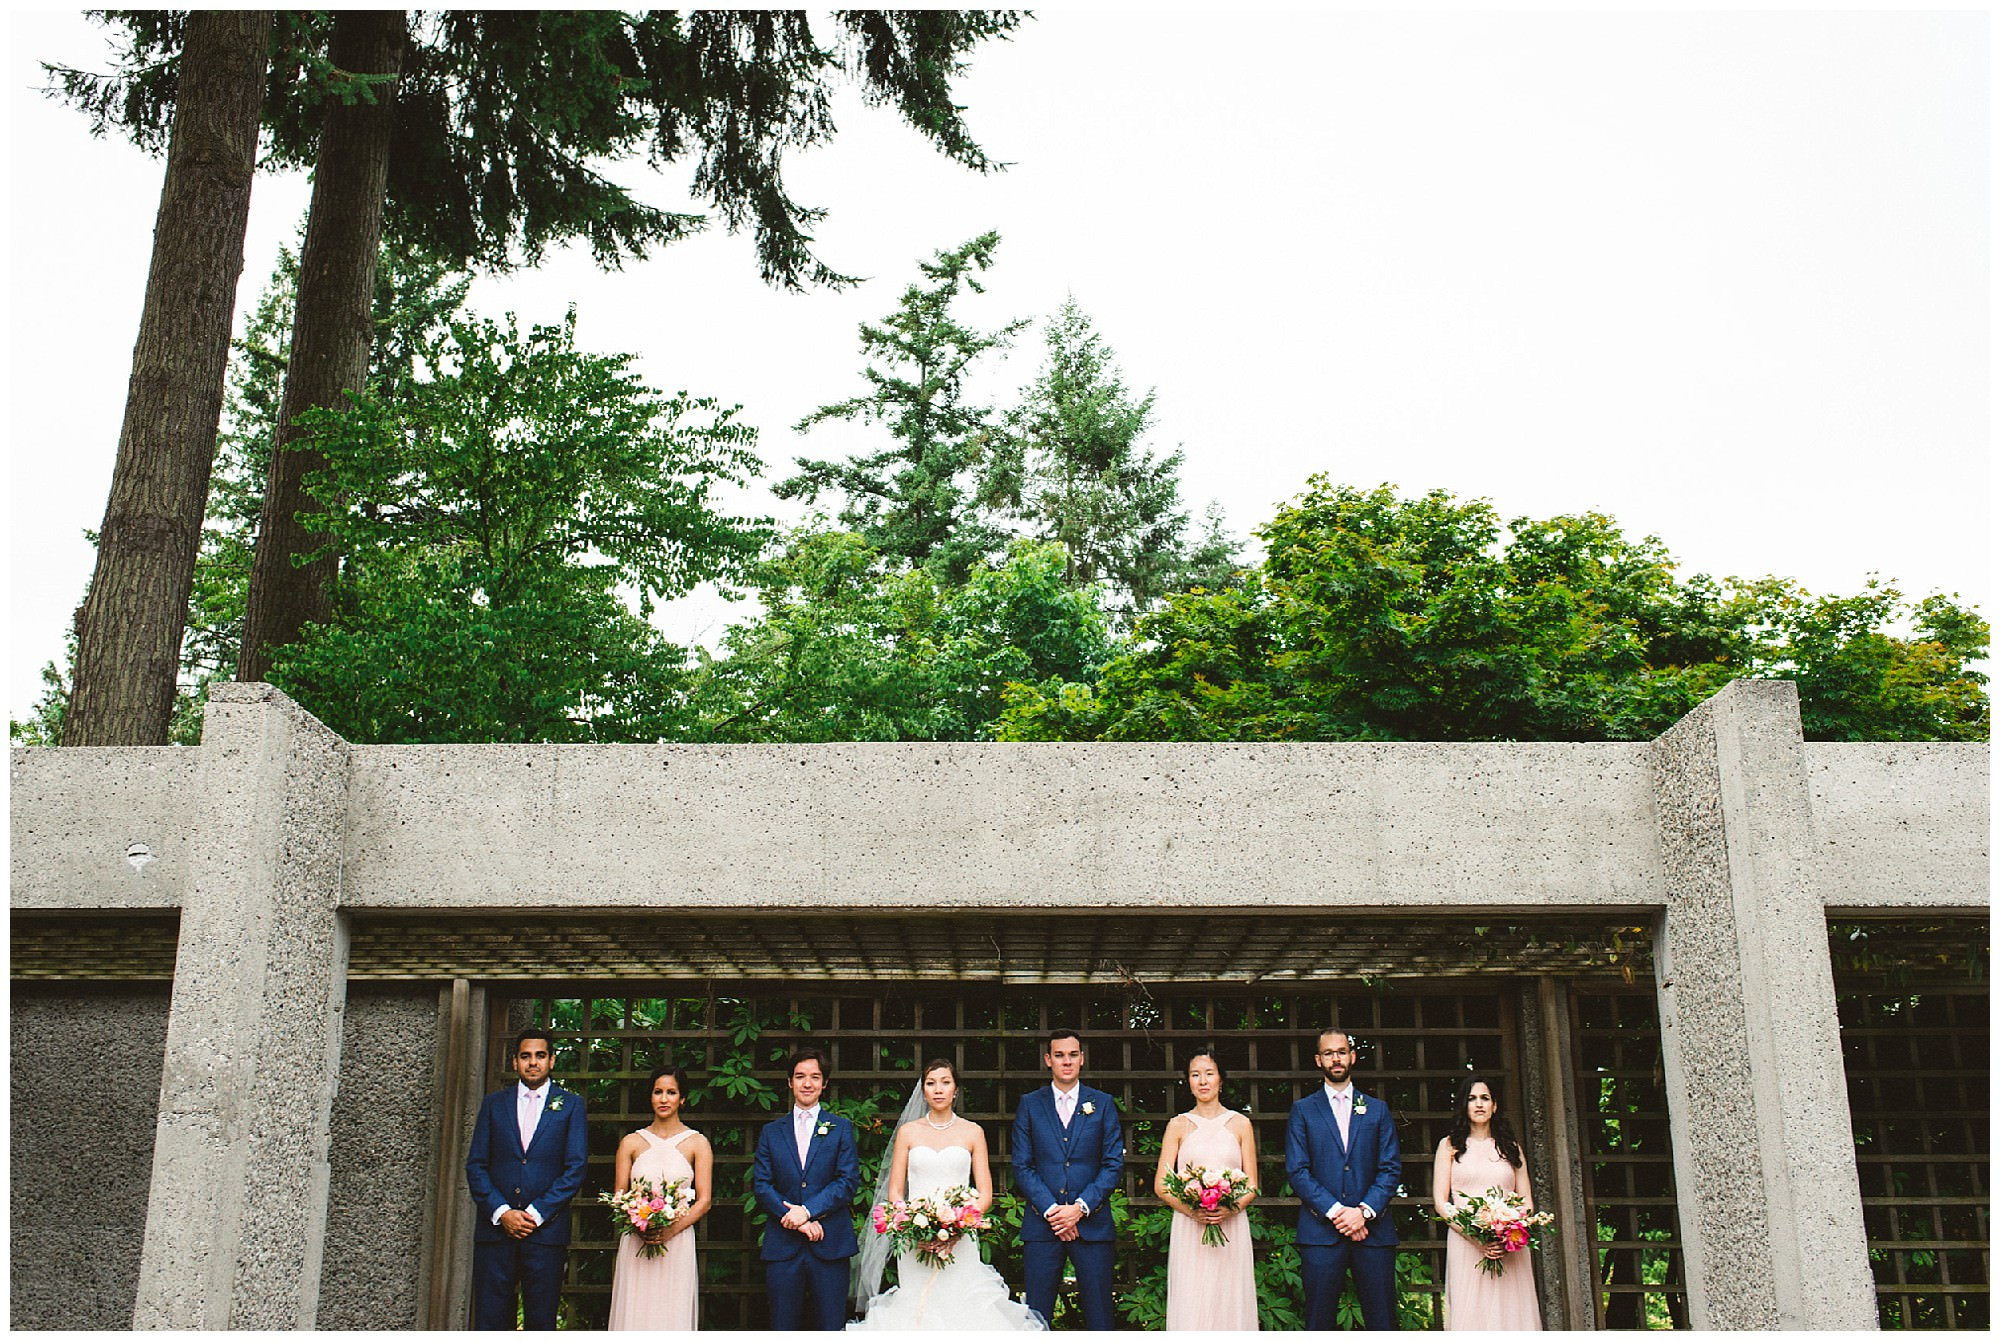 Cecil Green Park House wedding, vancouver wedding photographer, bc wedding photographer, vancouver wedding photography, local wedding photographer, candid wedding photographer, fun wedding photography, Dream Group wedding planners, Indochino, bride and groom, bride, groom, terminal city club, ronnie lee hill photography, UBC rose gardens, wedding candid, candid wedding photography, documentary wedding photography, bridal party